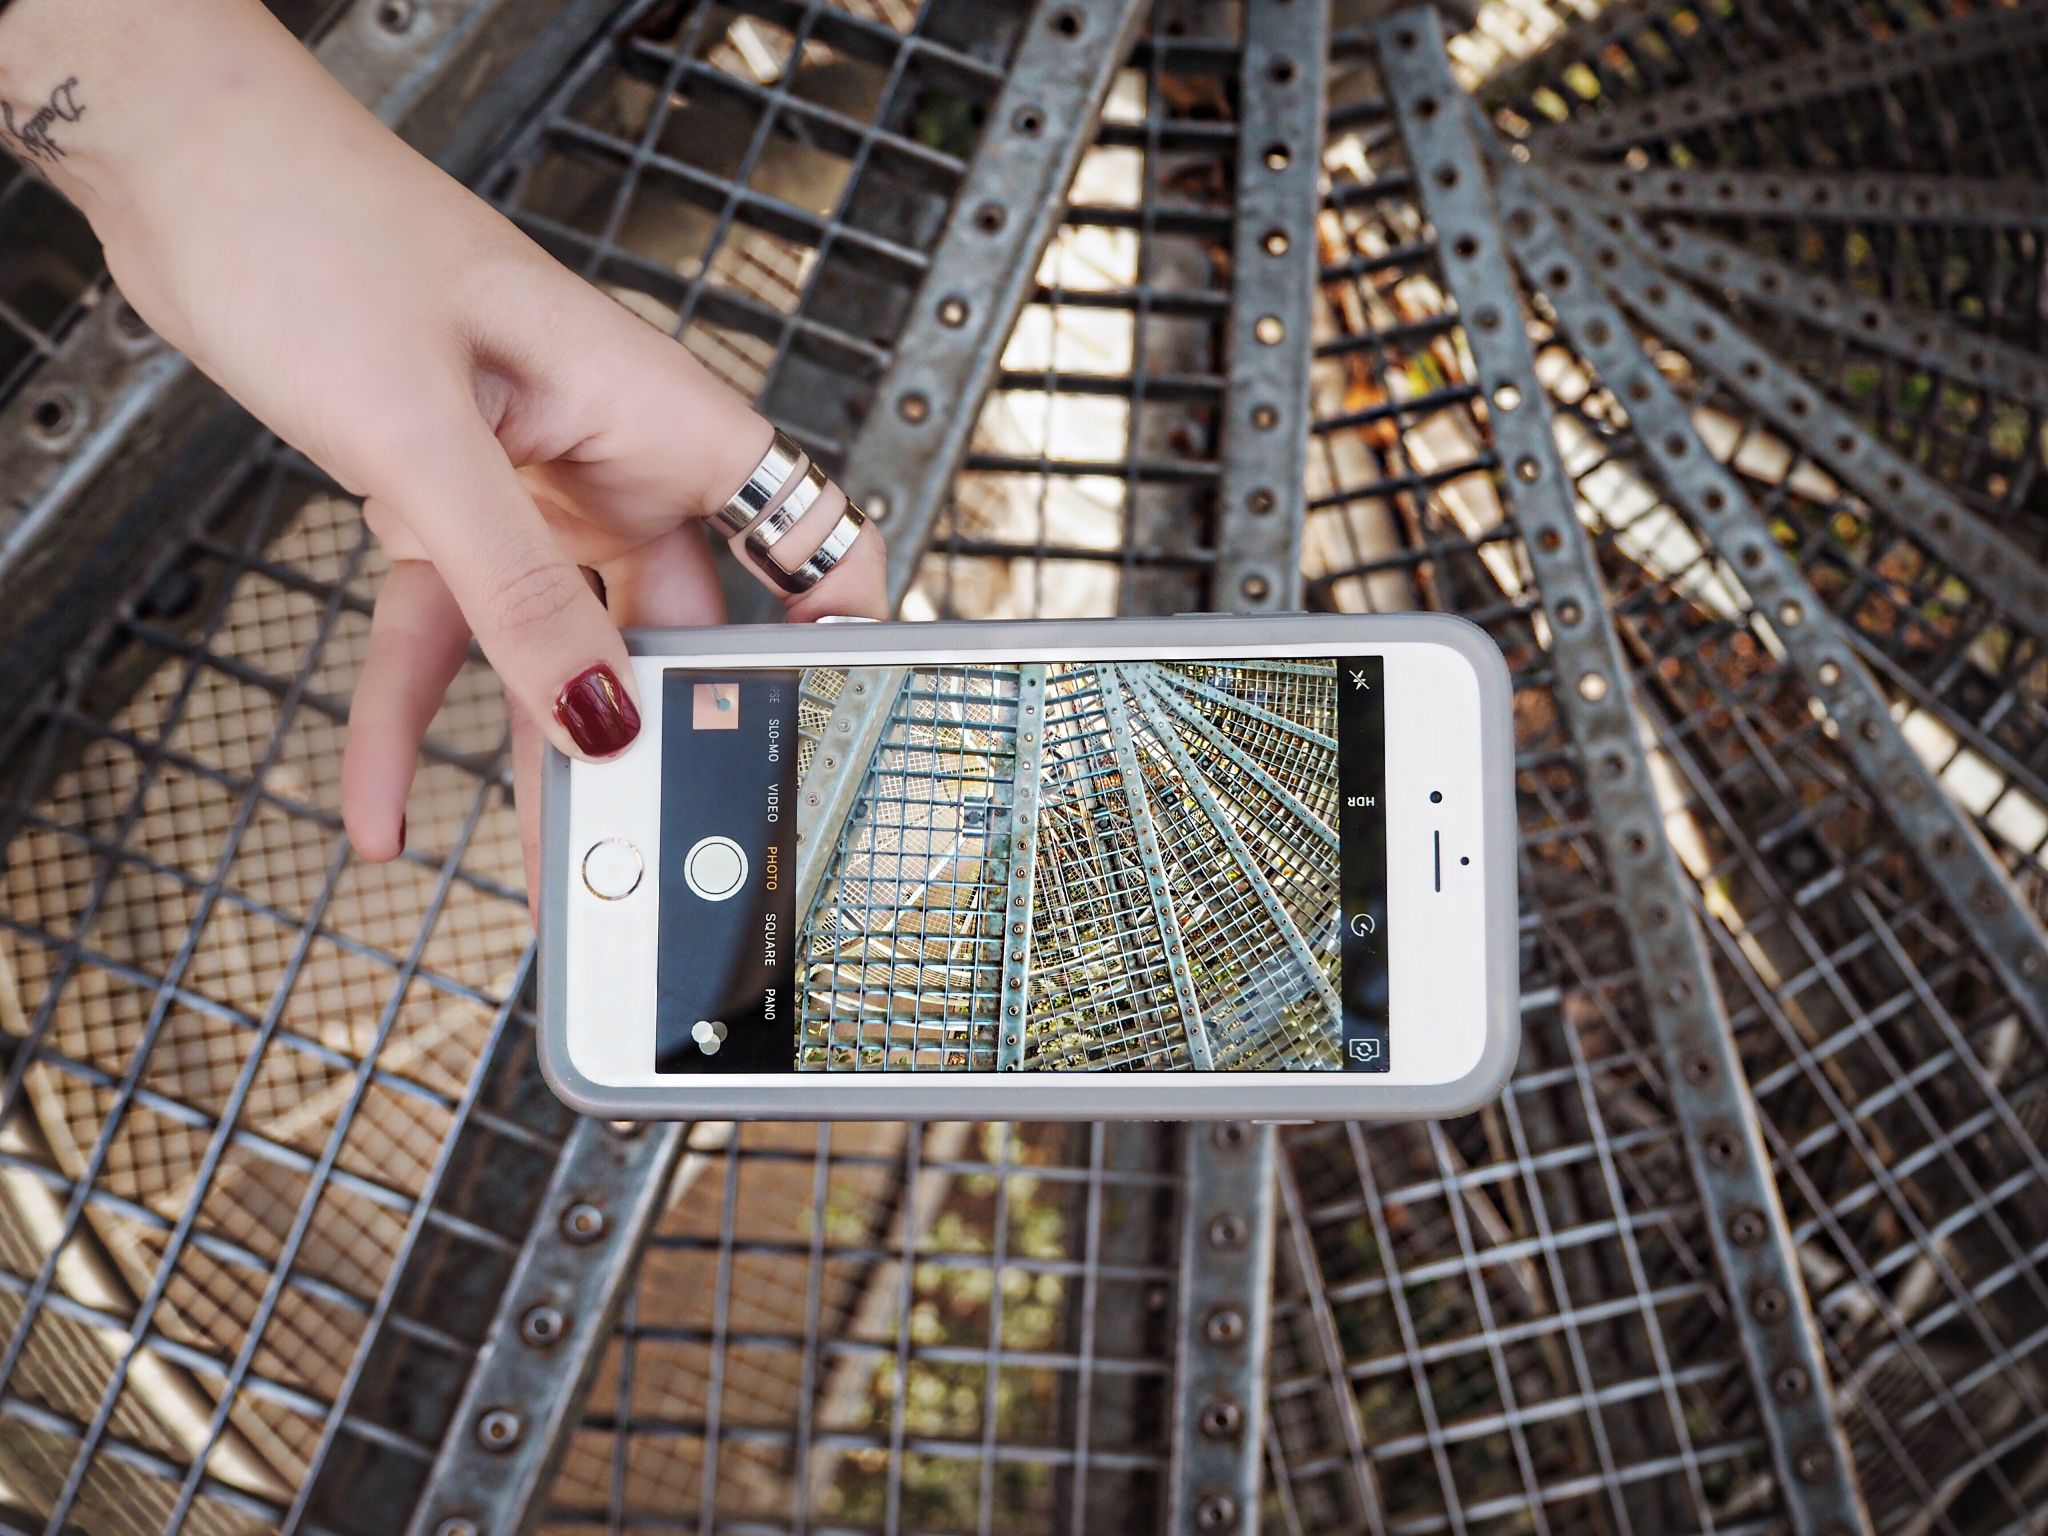 hortus-botanicus-amsterdam-botanic-garden-phone-case-otterbox-symmetry-clear-silver-rings